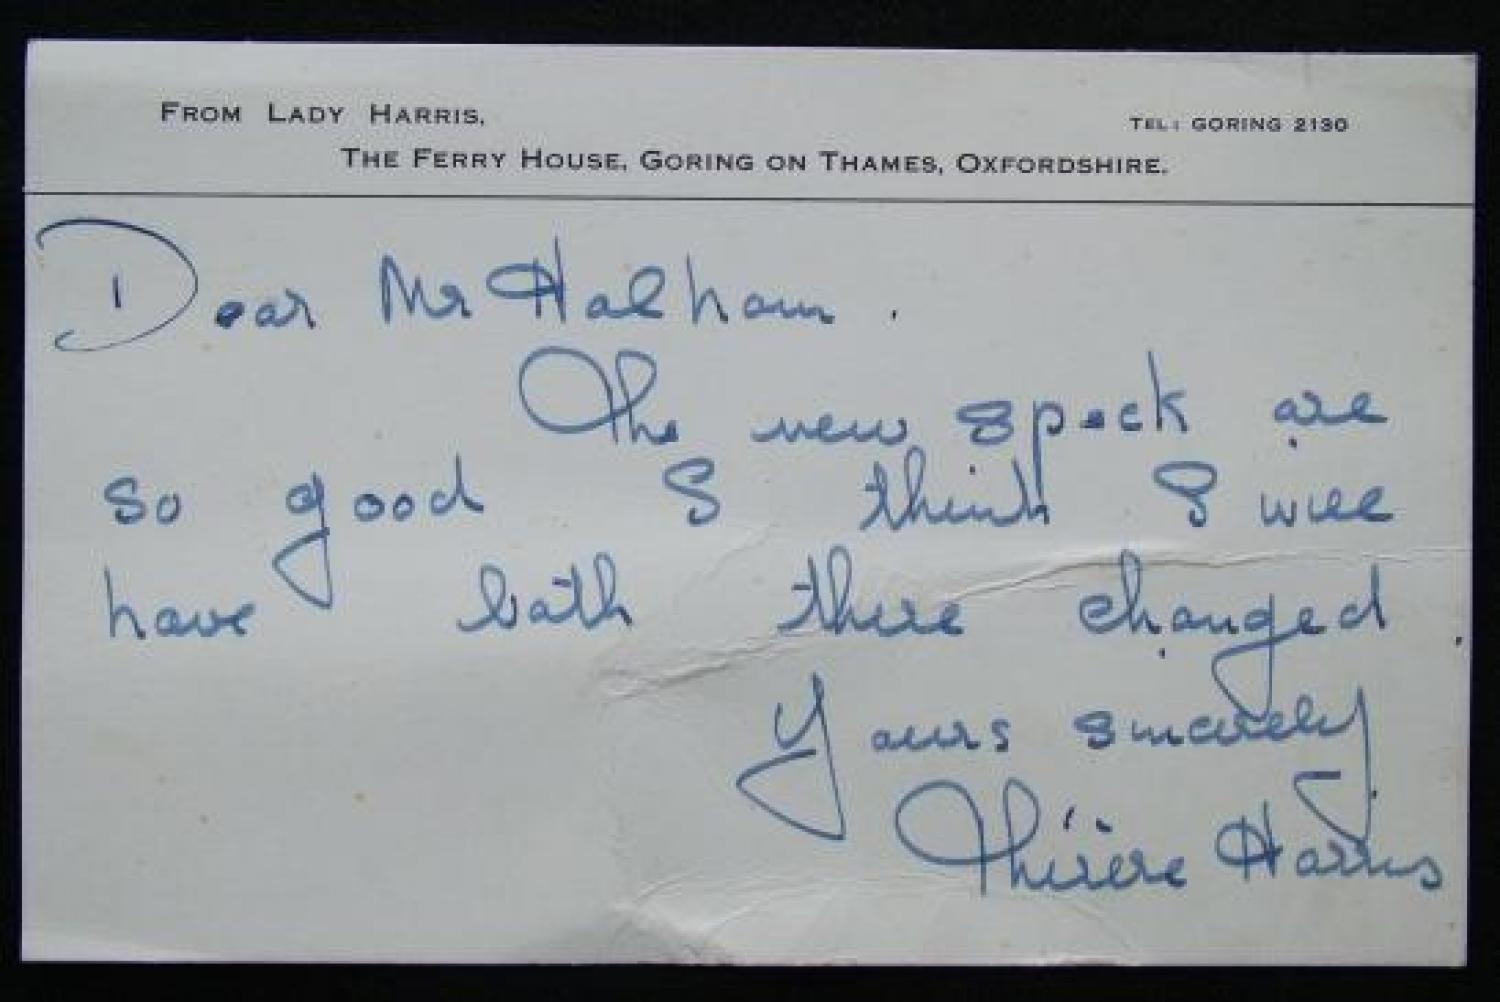 Handwritten, Signed Note From Lady Harris